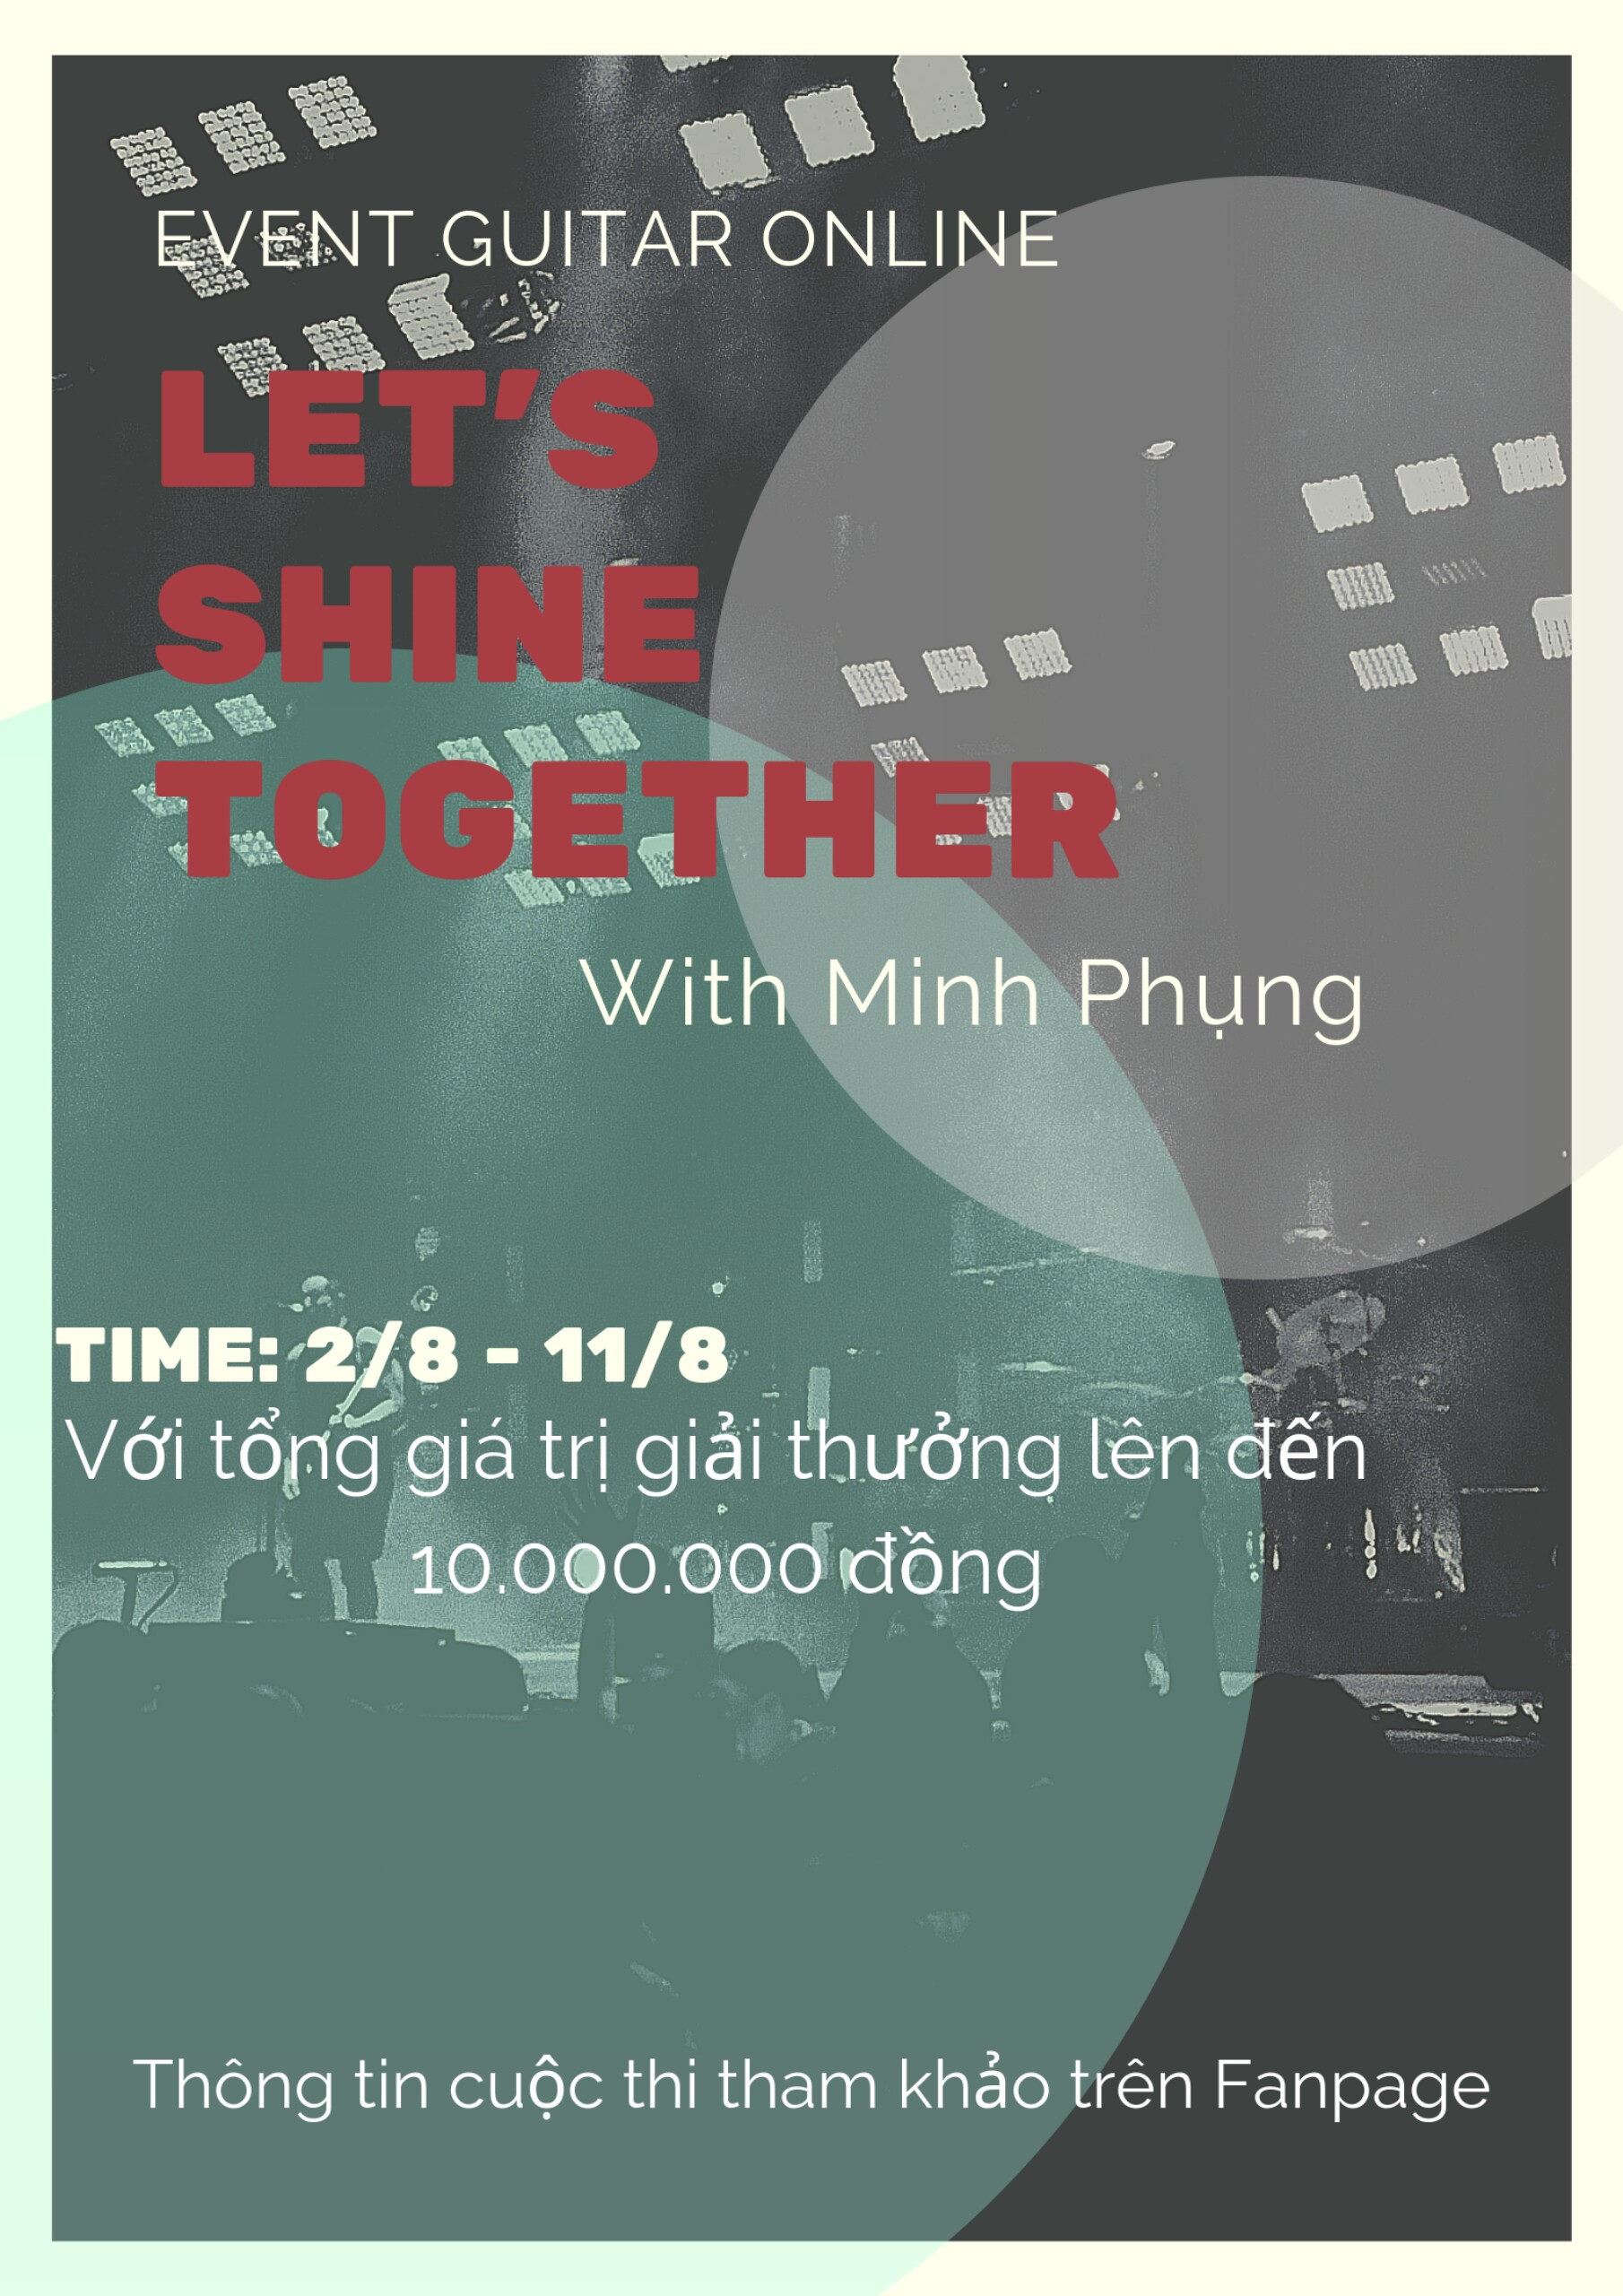 LET'S SHINE TOGETHER